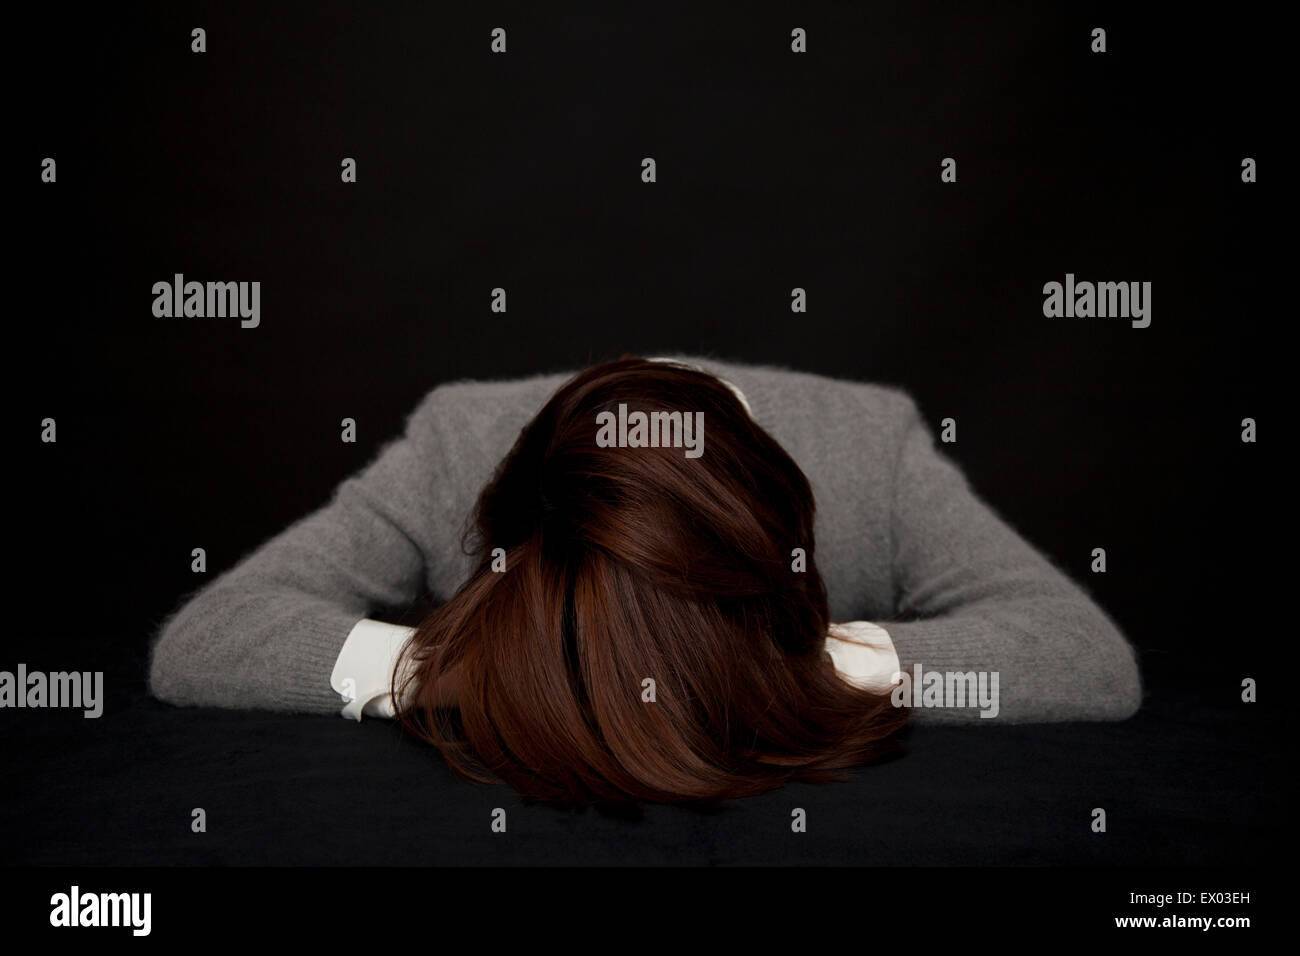 Portrait of woman resting head on table Stock Photo